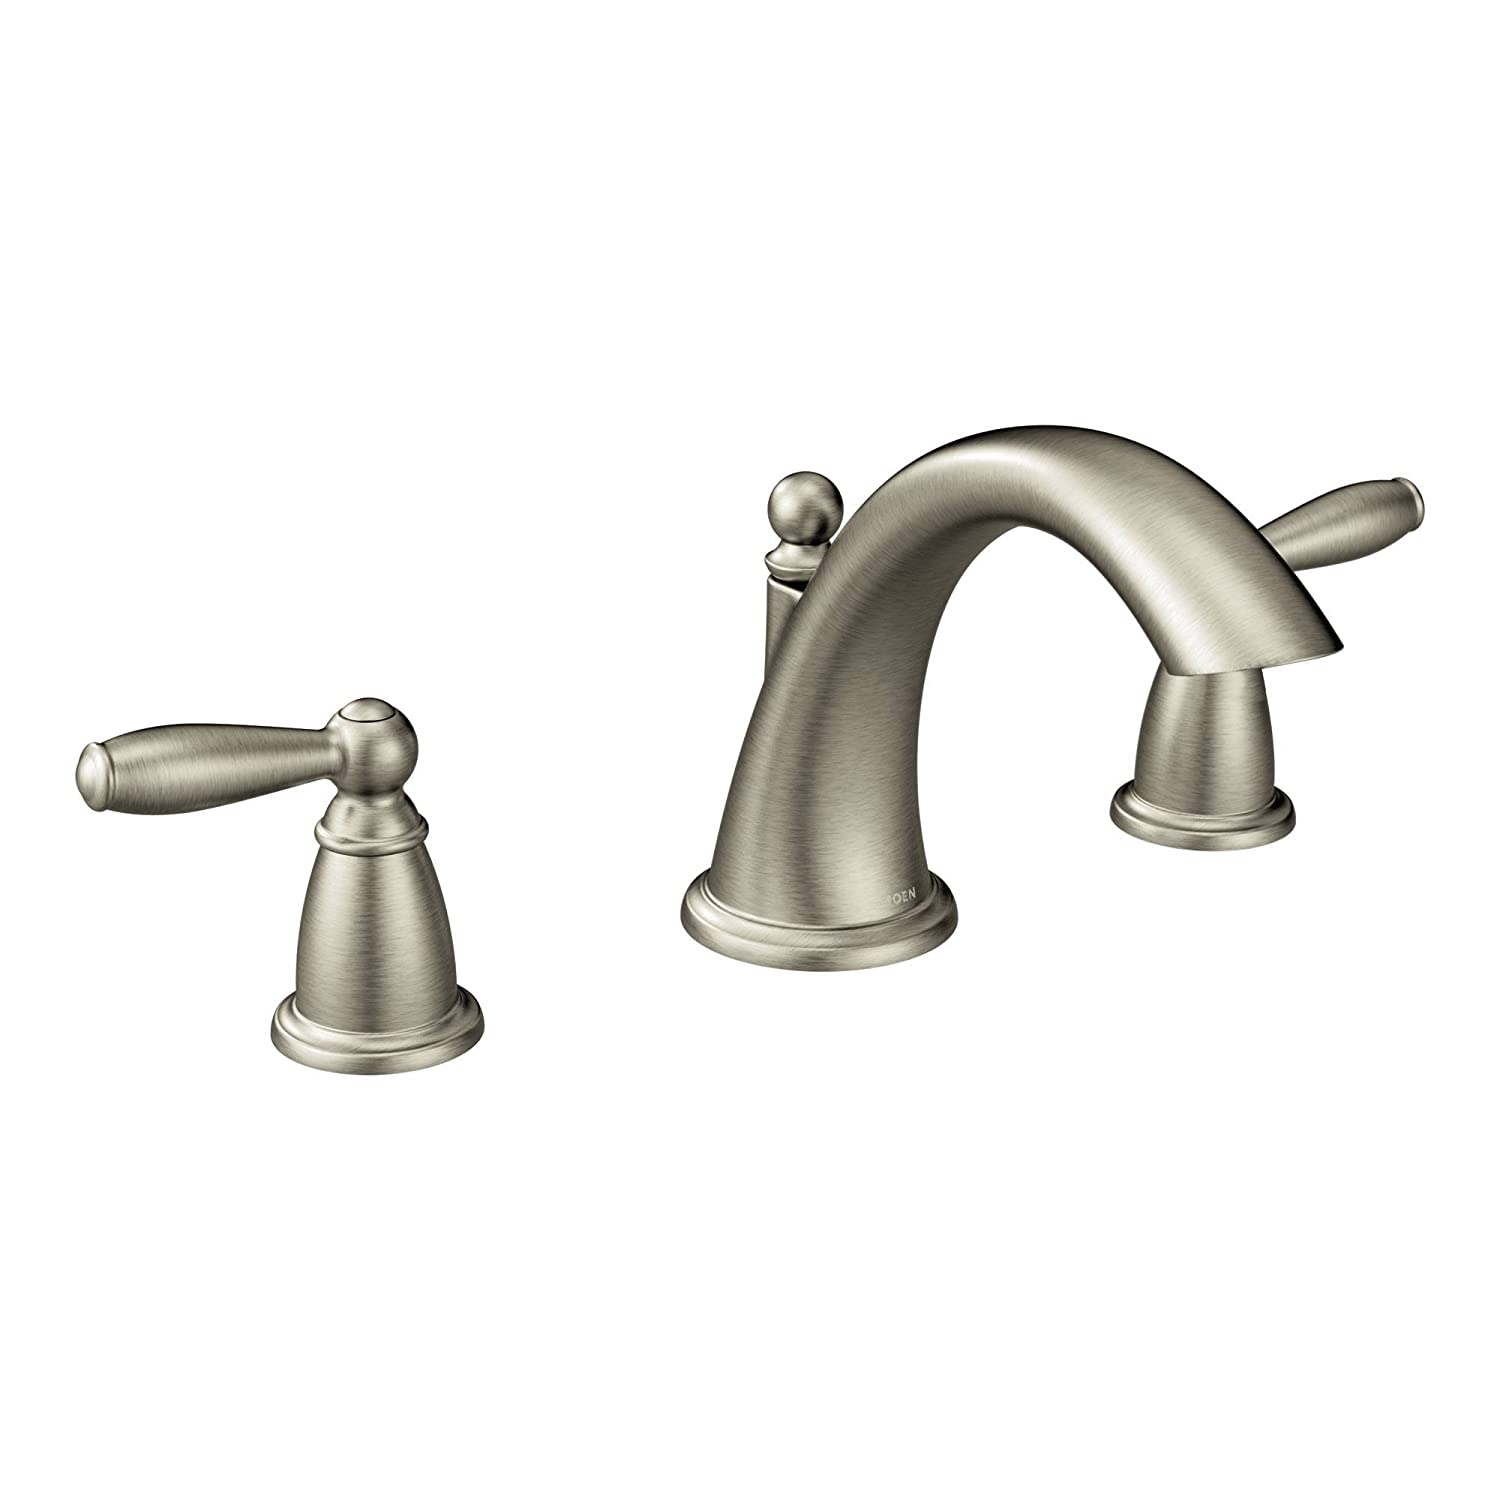 replacement parts faucets tub bathroom moen faucet pot bronze filler clawfoot rubbed vessel jacuzzi bathtub shower sinks